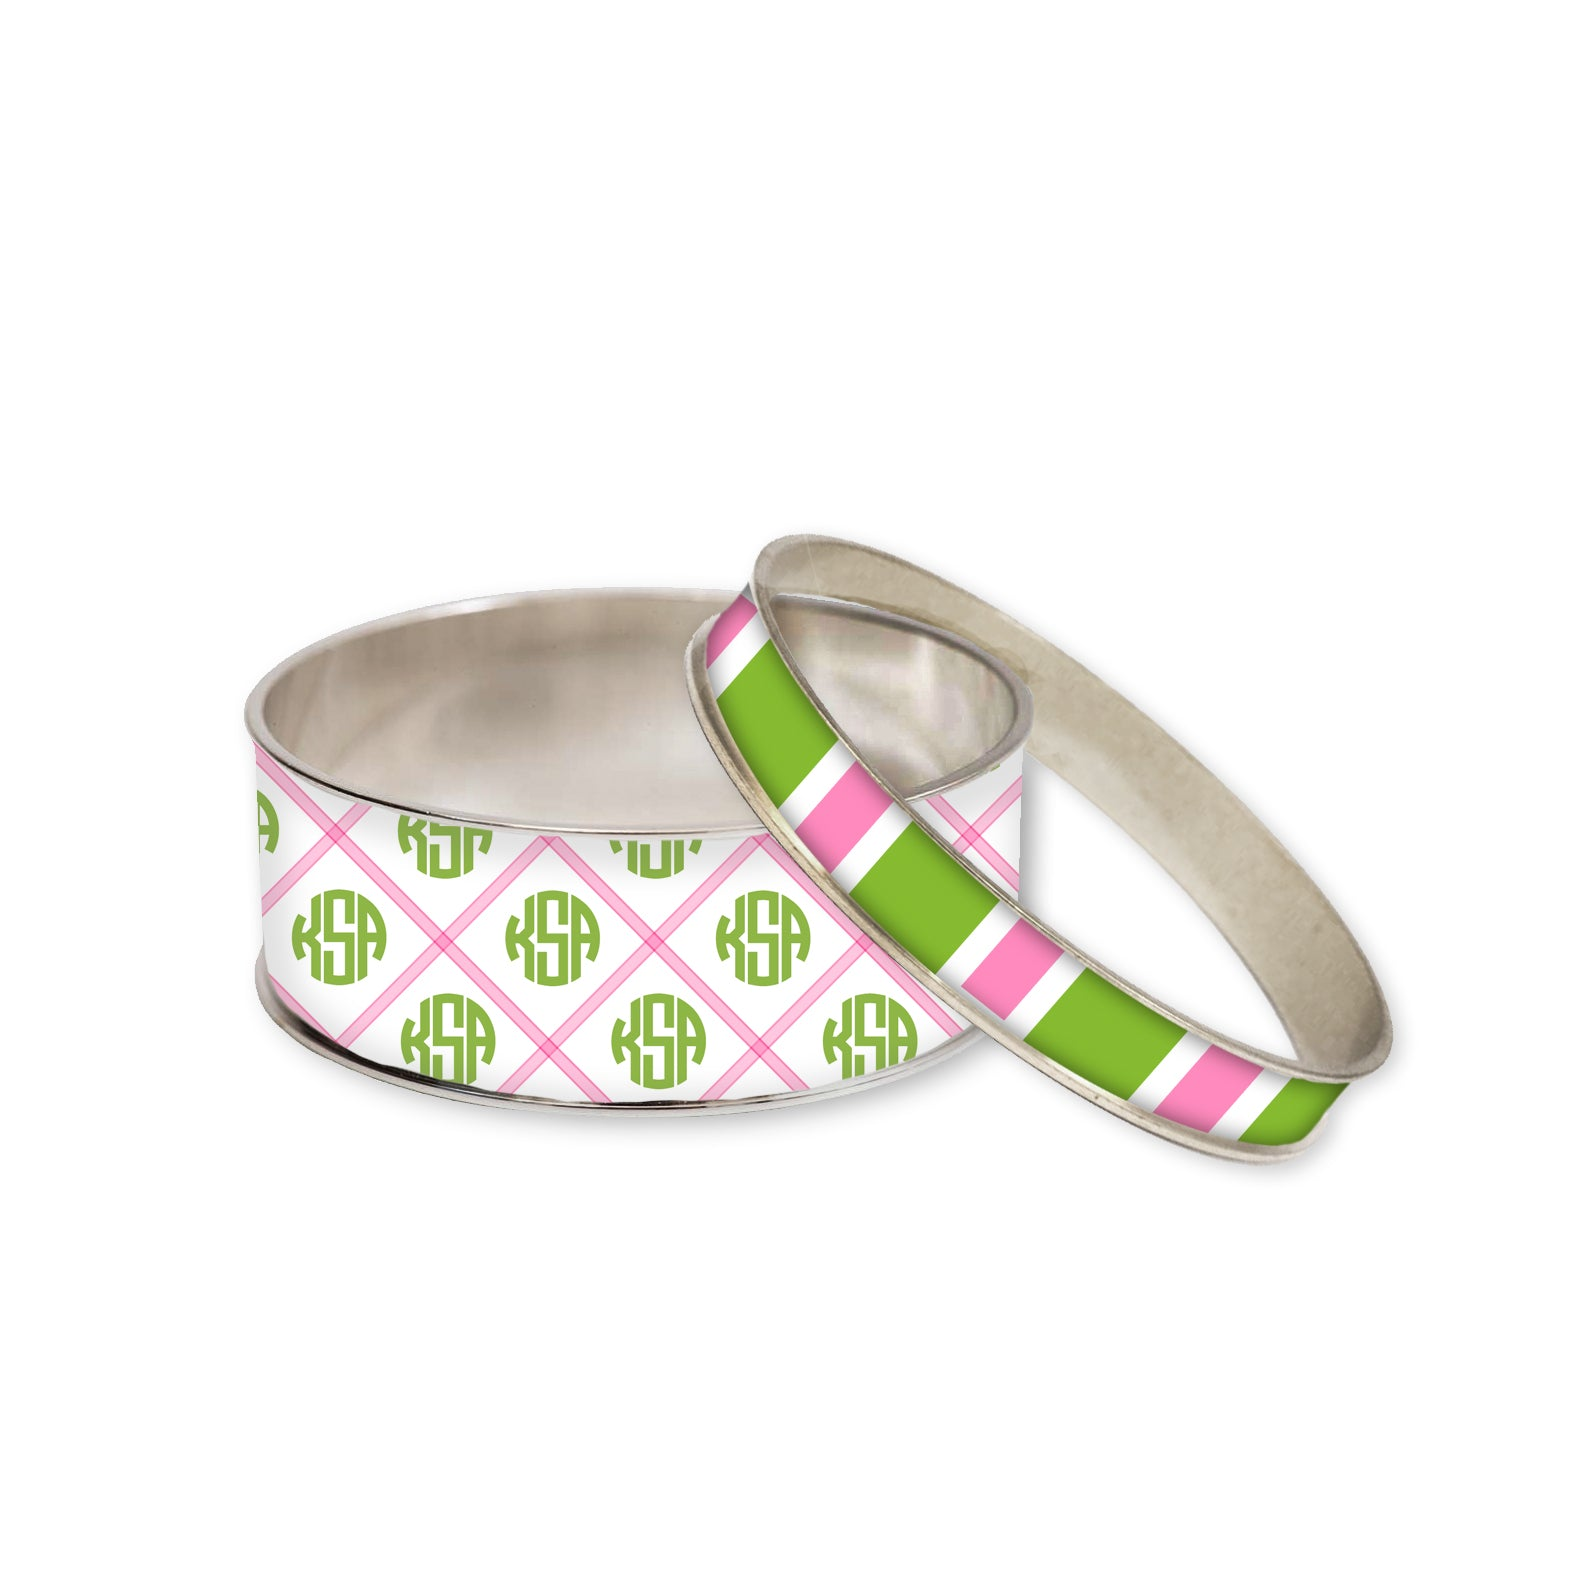 Edgartown Pink Monogram Bangle Bracelet Set